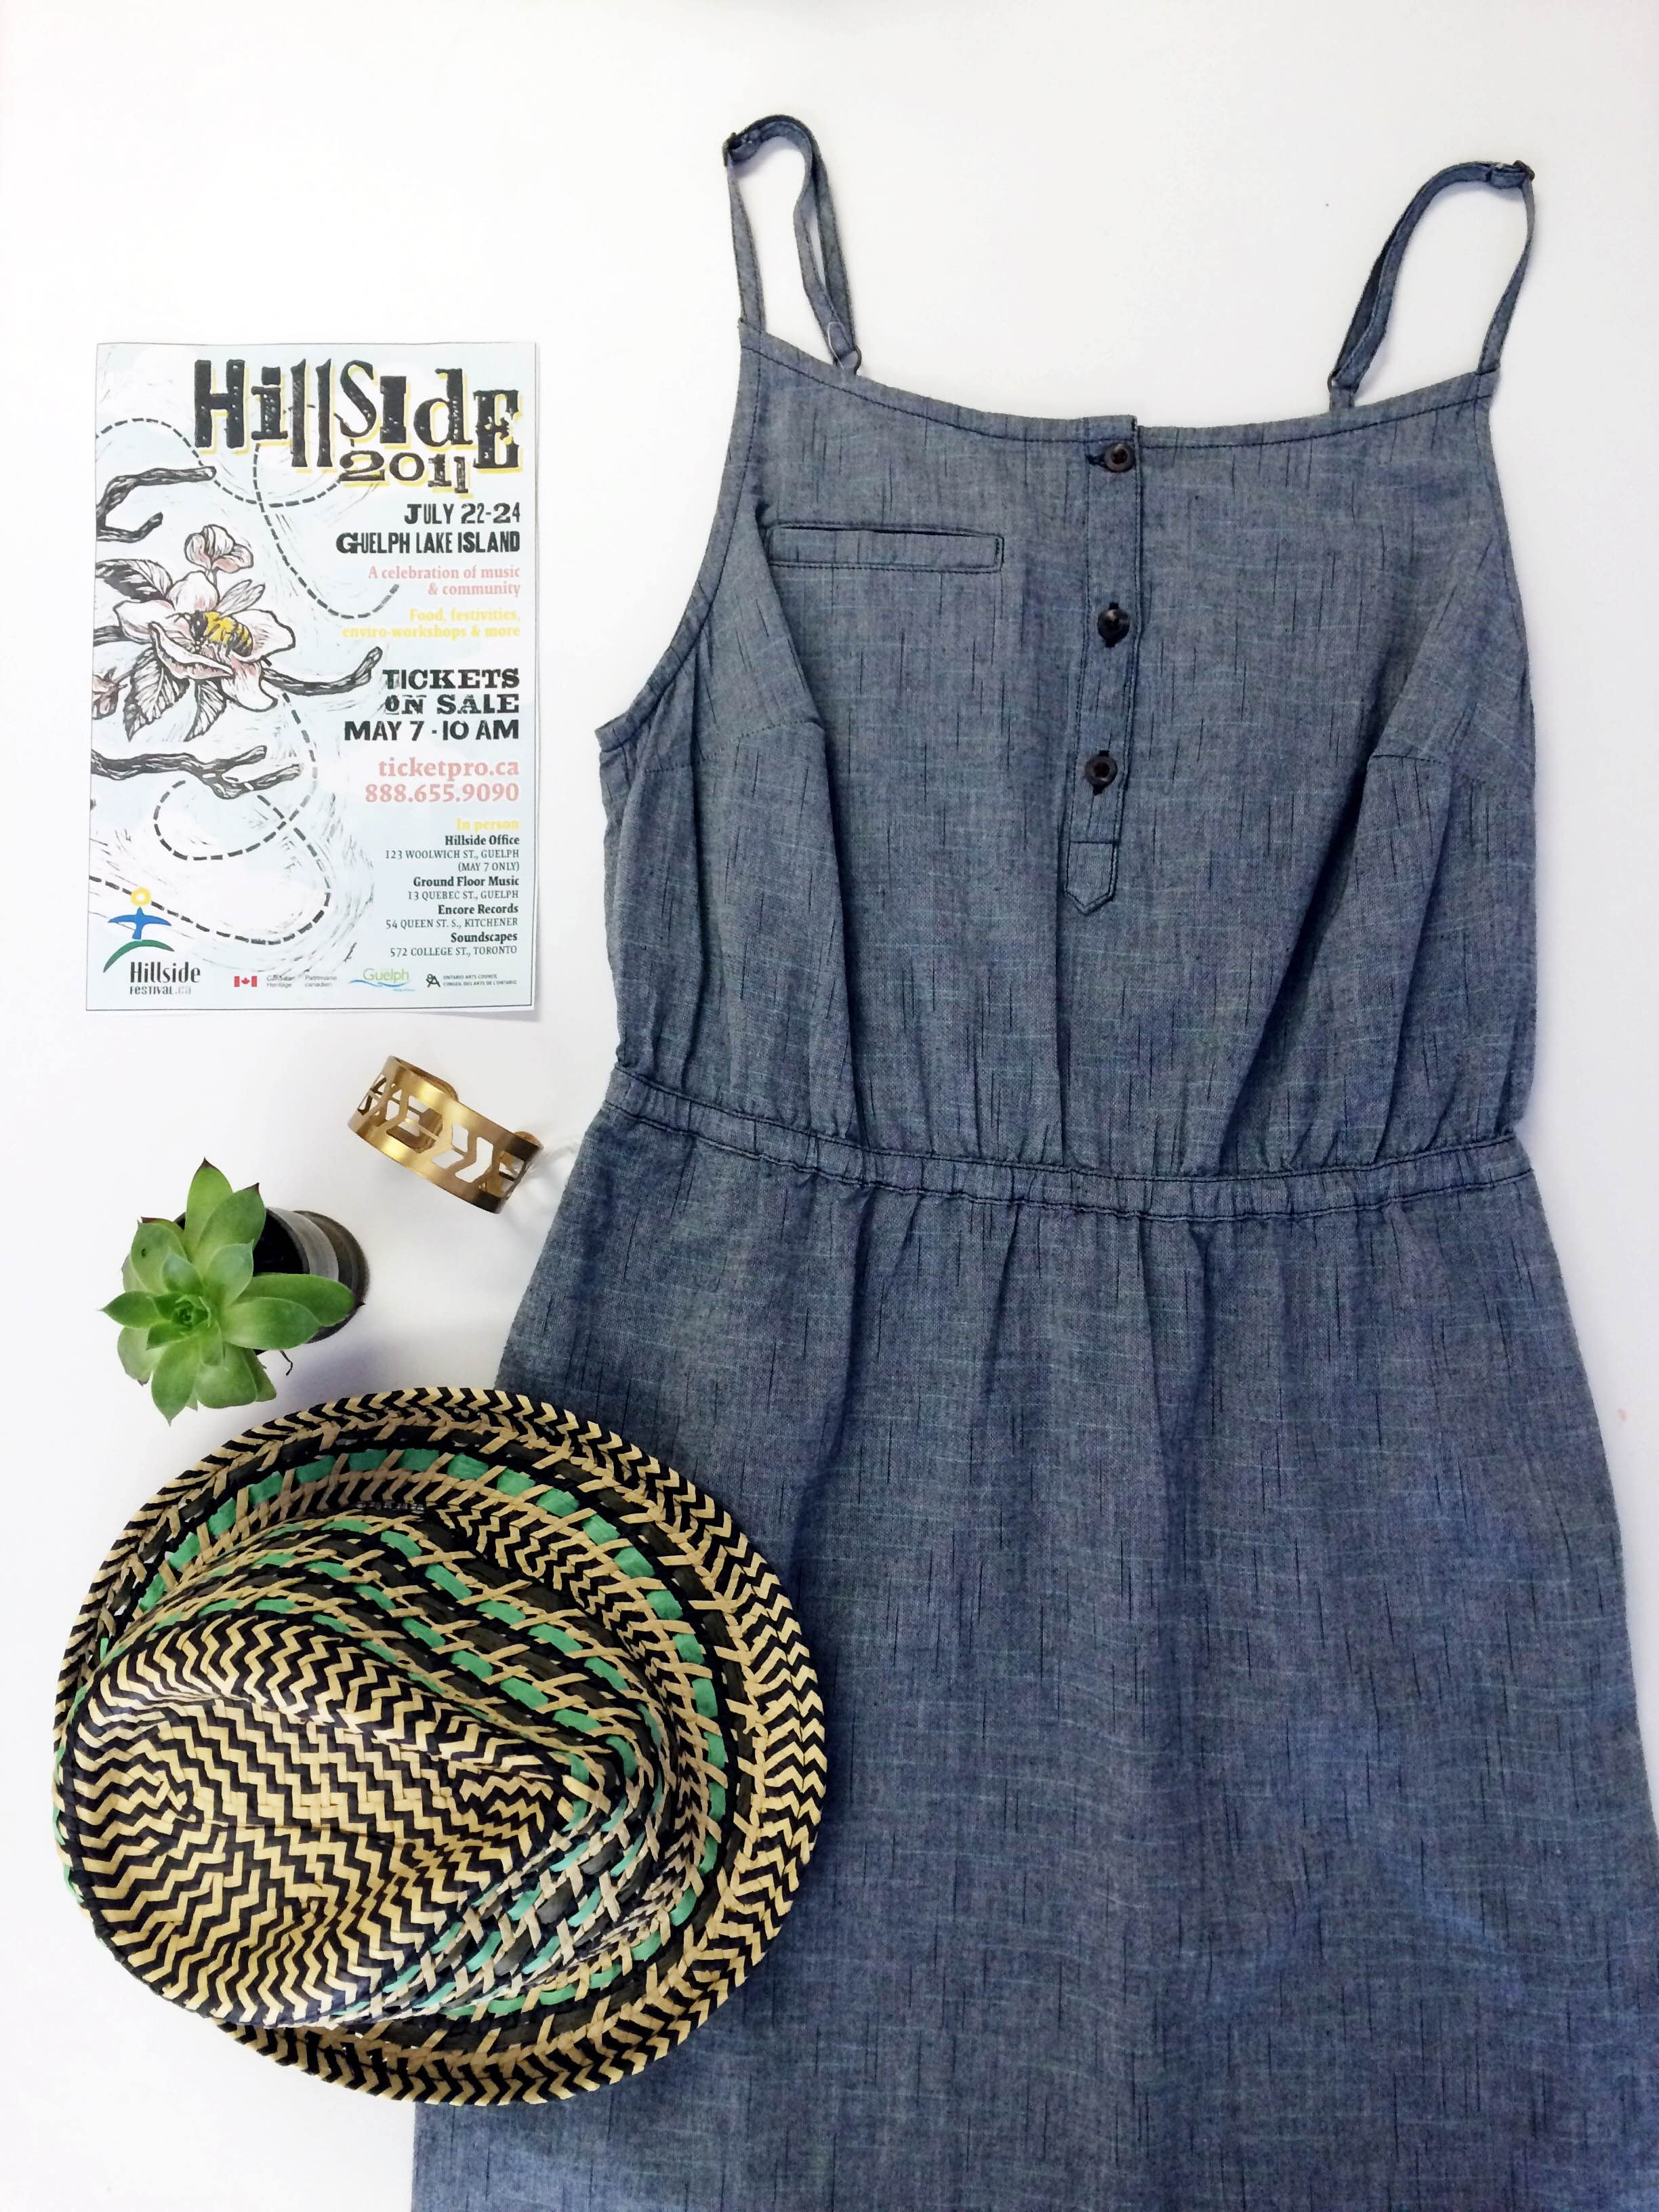 For our 2011 themed post, we've paired our poster with our Toad & Co Chambray Dress. Light and breezy, this dress is perfect for the hotter days of Hillside. For some protection from the sun, we paired it with our favourite Prana Fedora.